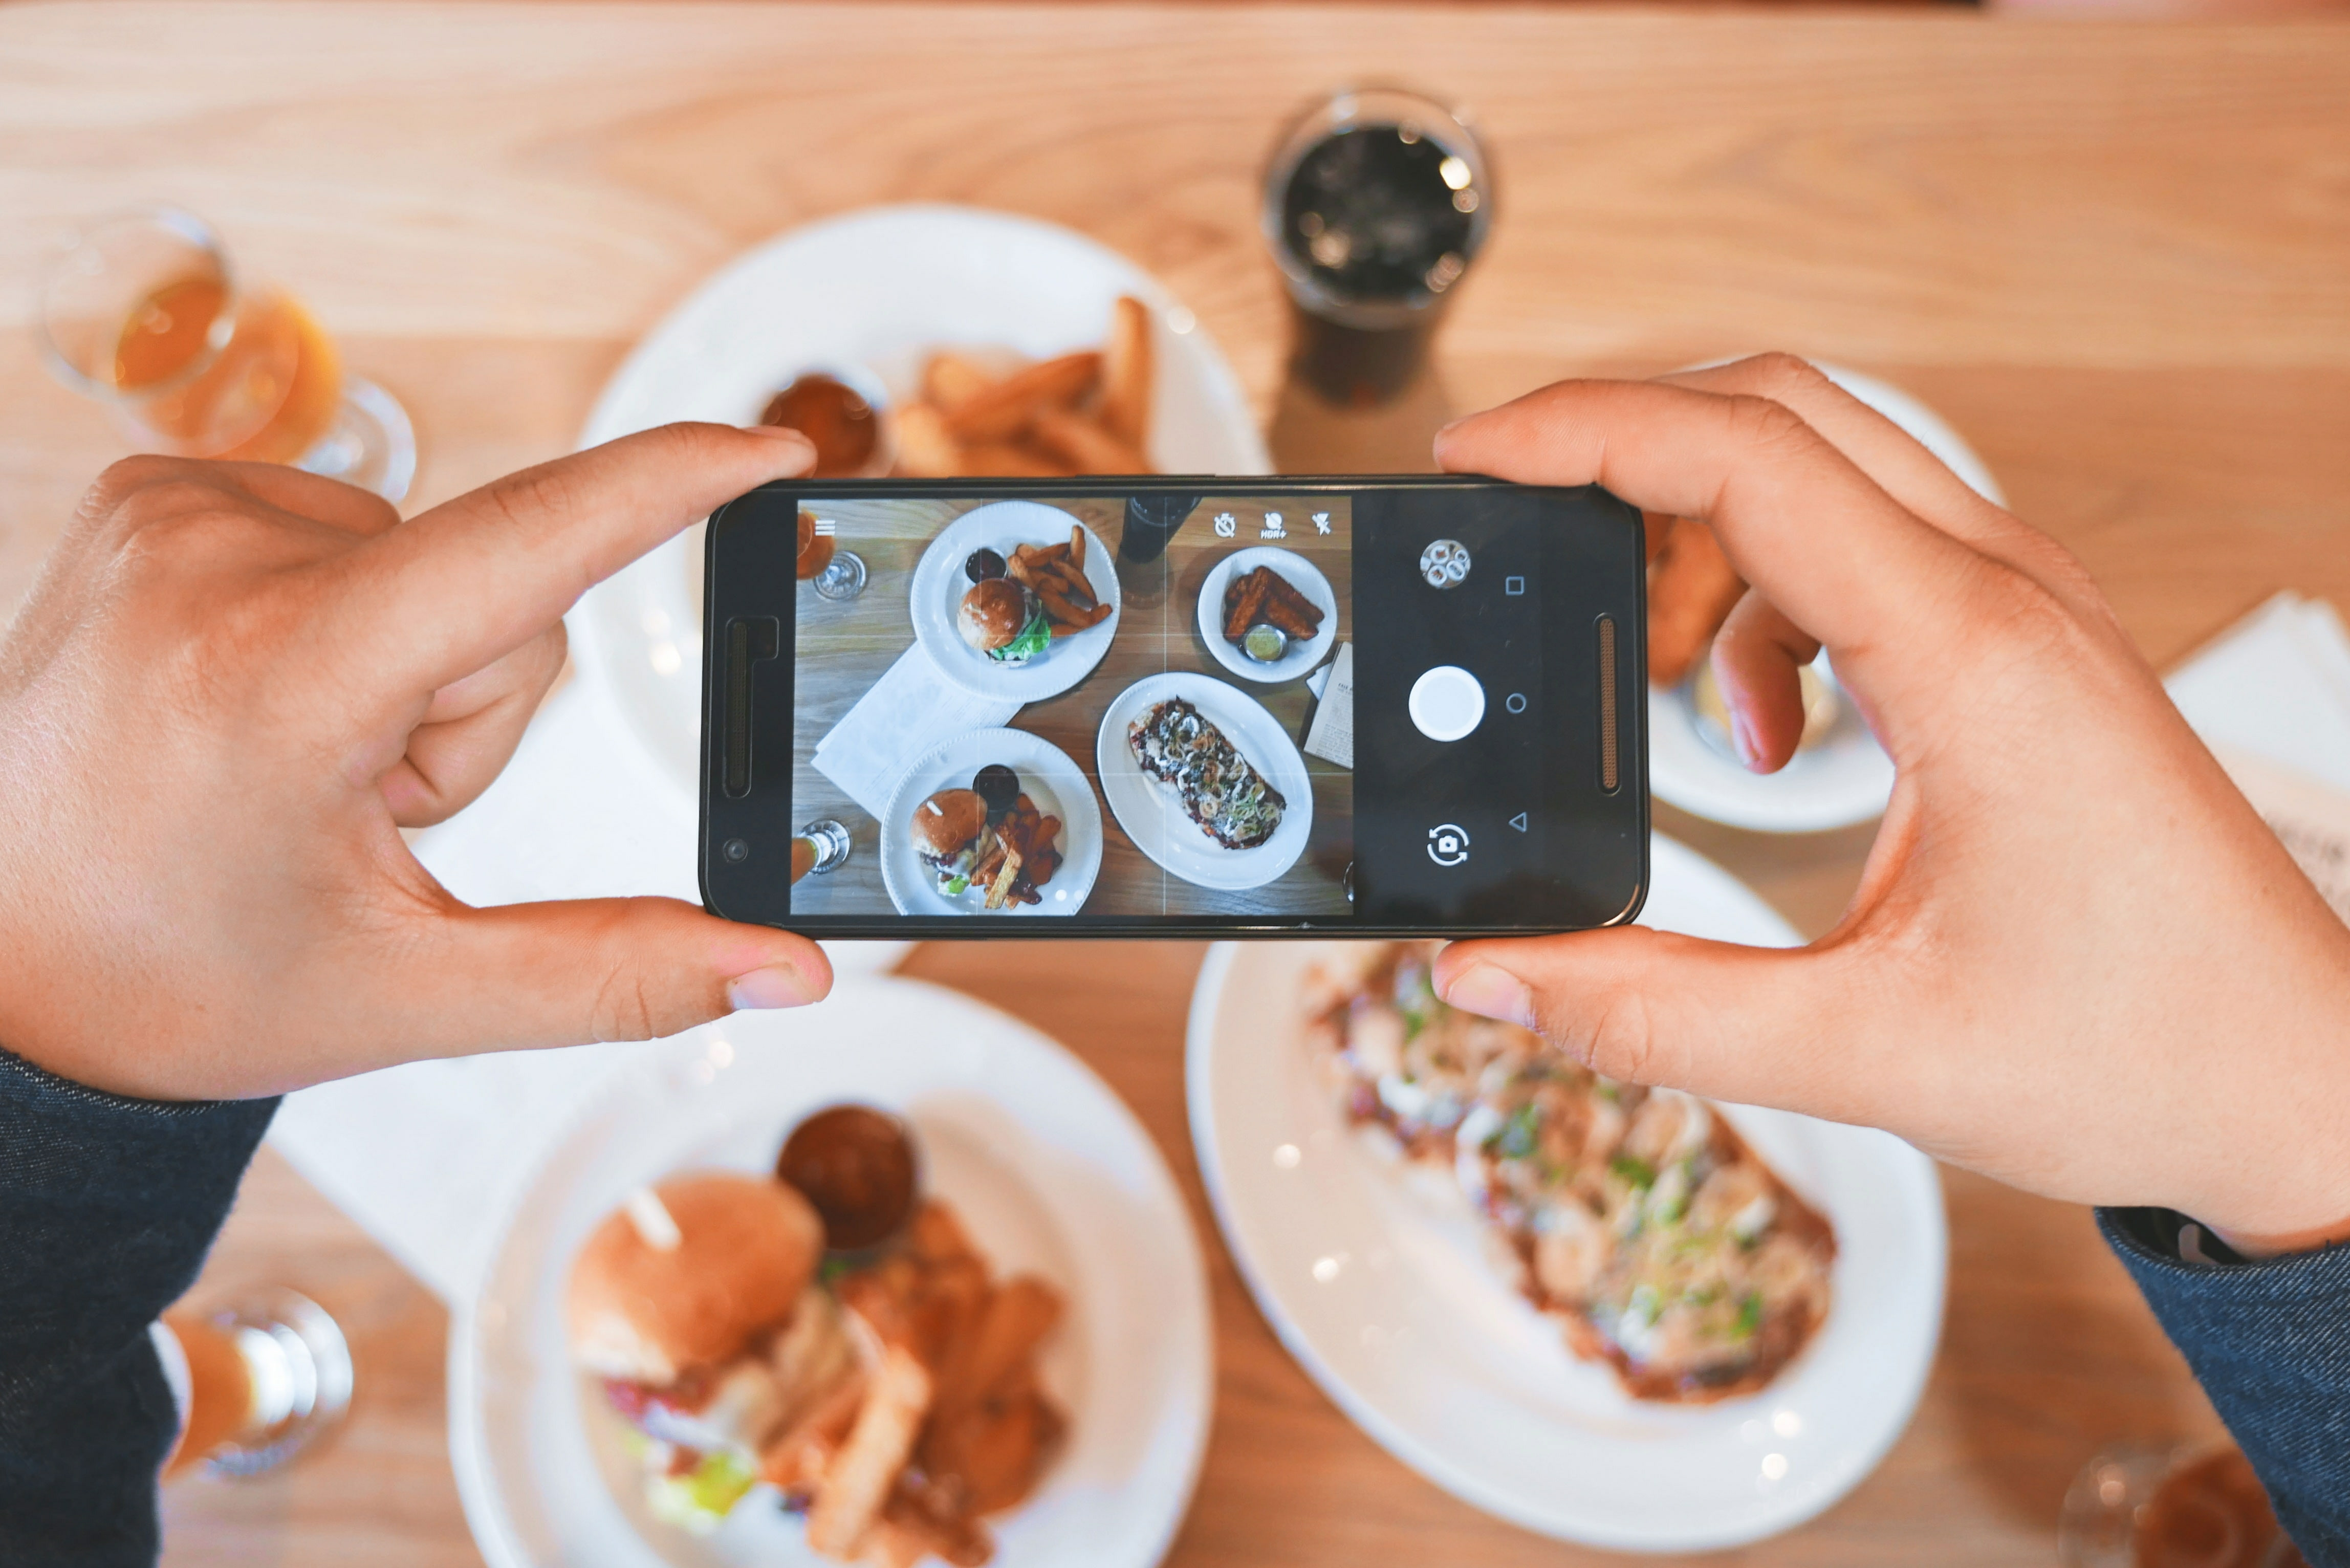 Someone taking a photo of food on white plates.